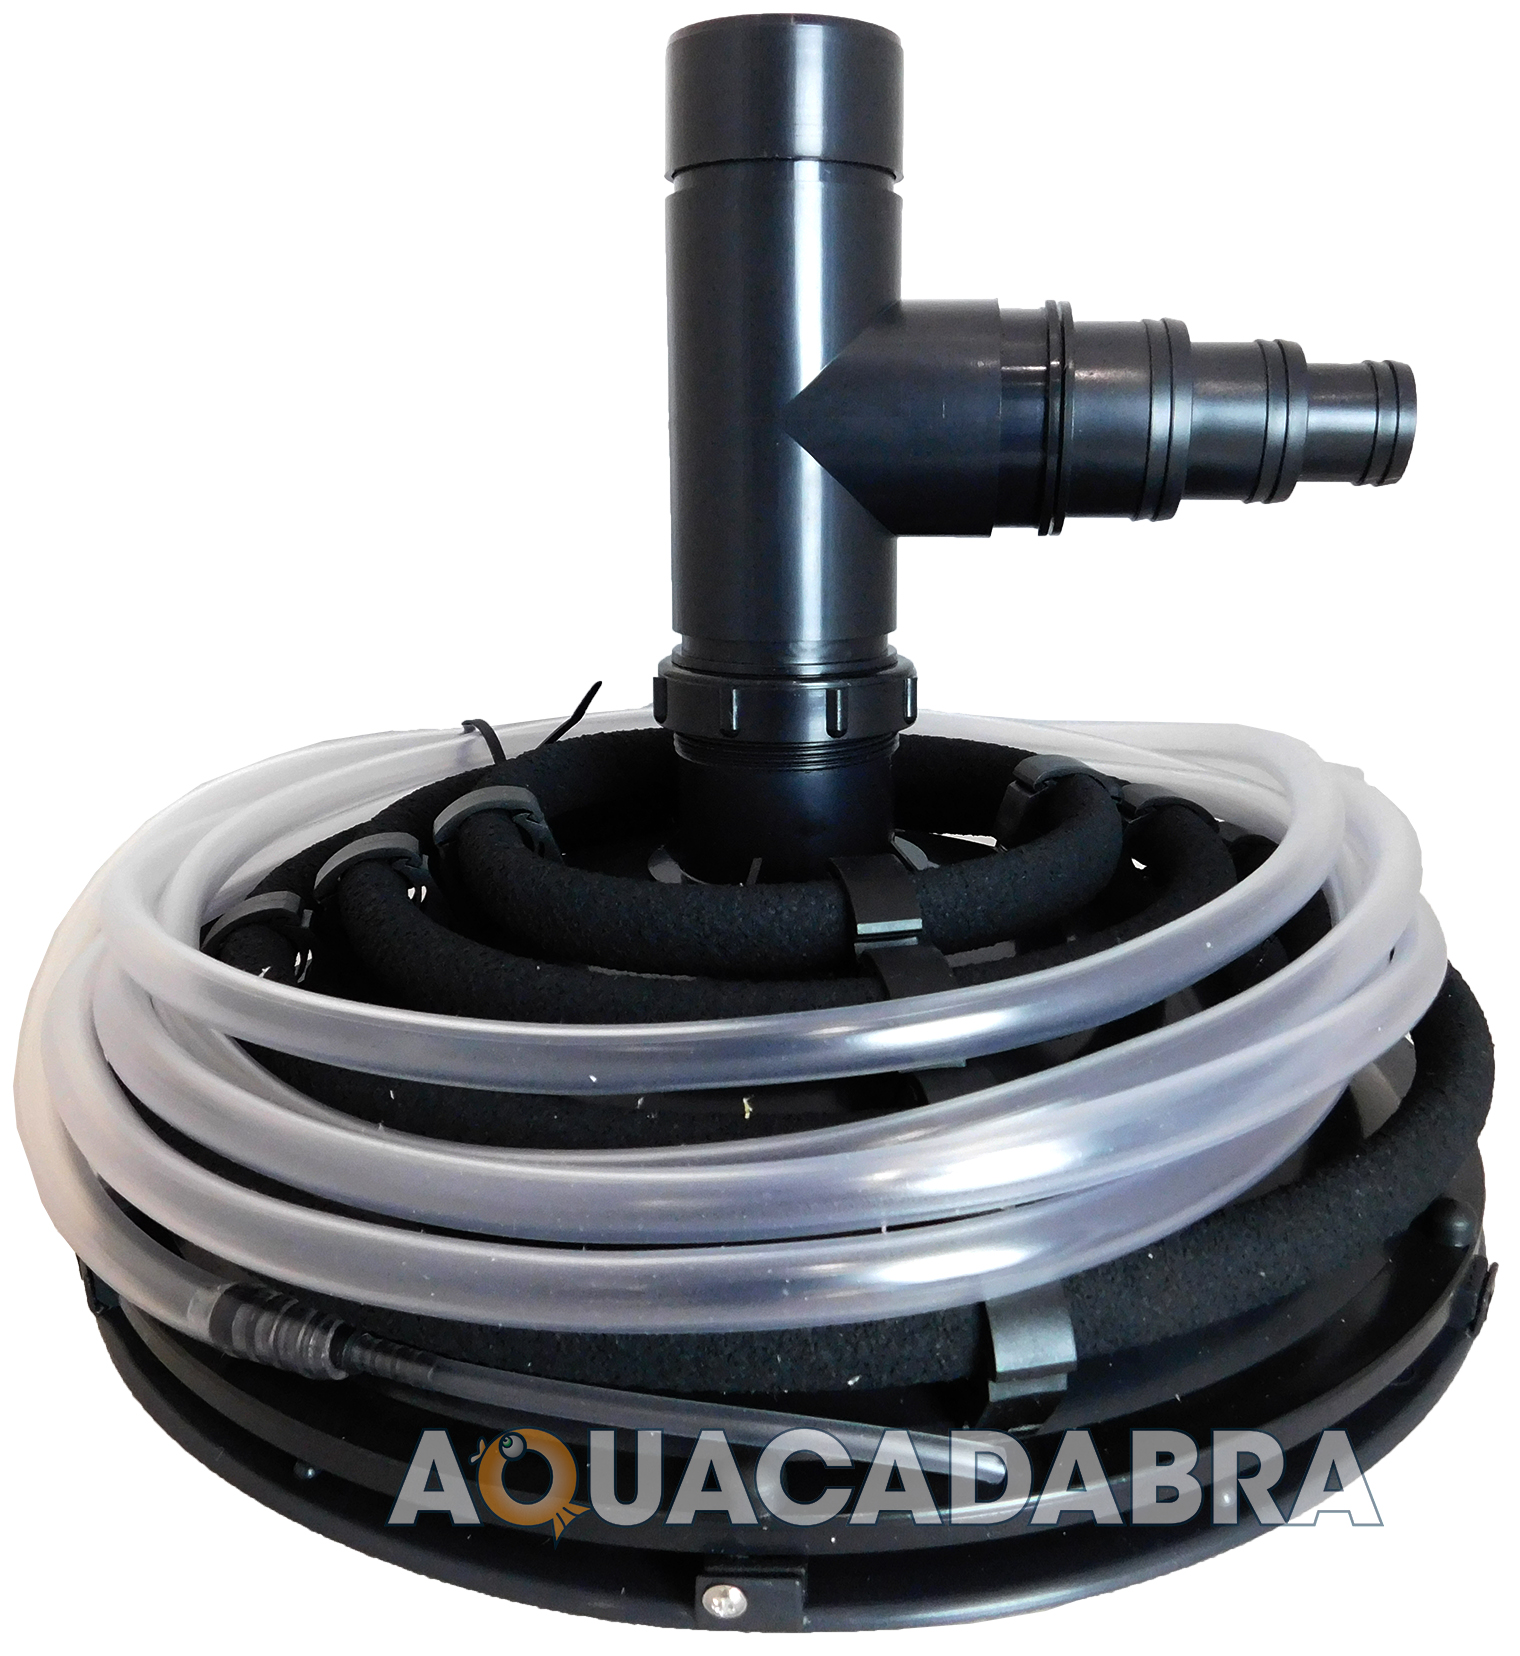 Retro Fit Domed Aerator Weighted Bottom Drain Fish Pond